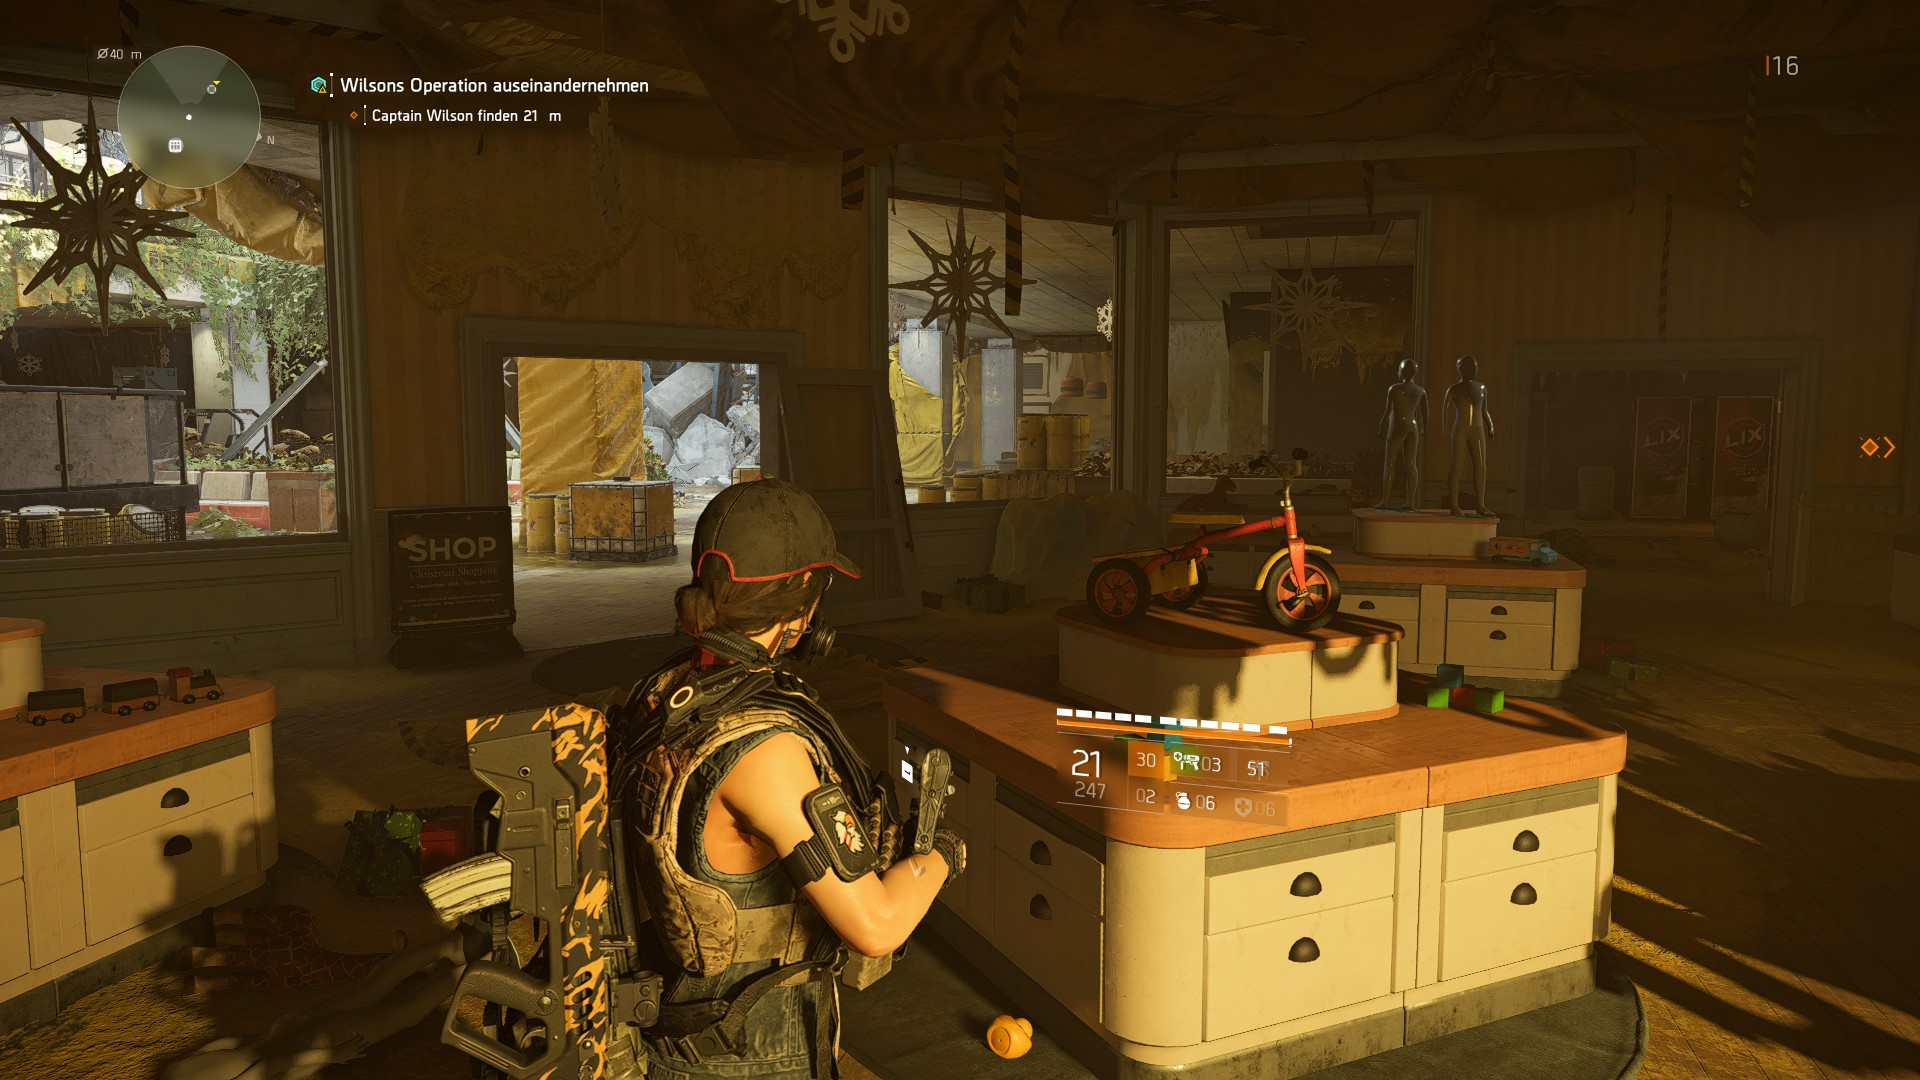 Tom Clancy's The Division® 22019-5-13-2-56-48.jpg